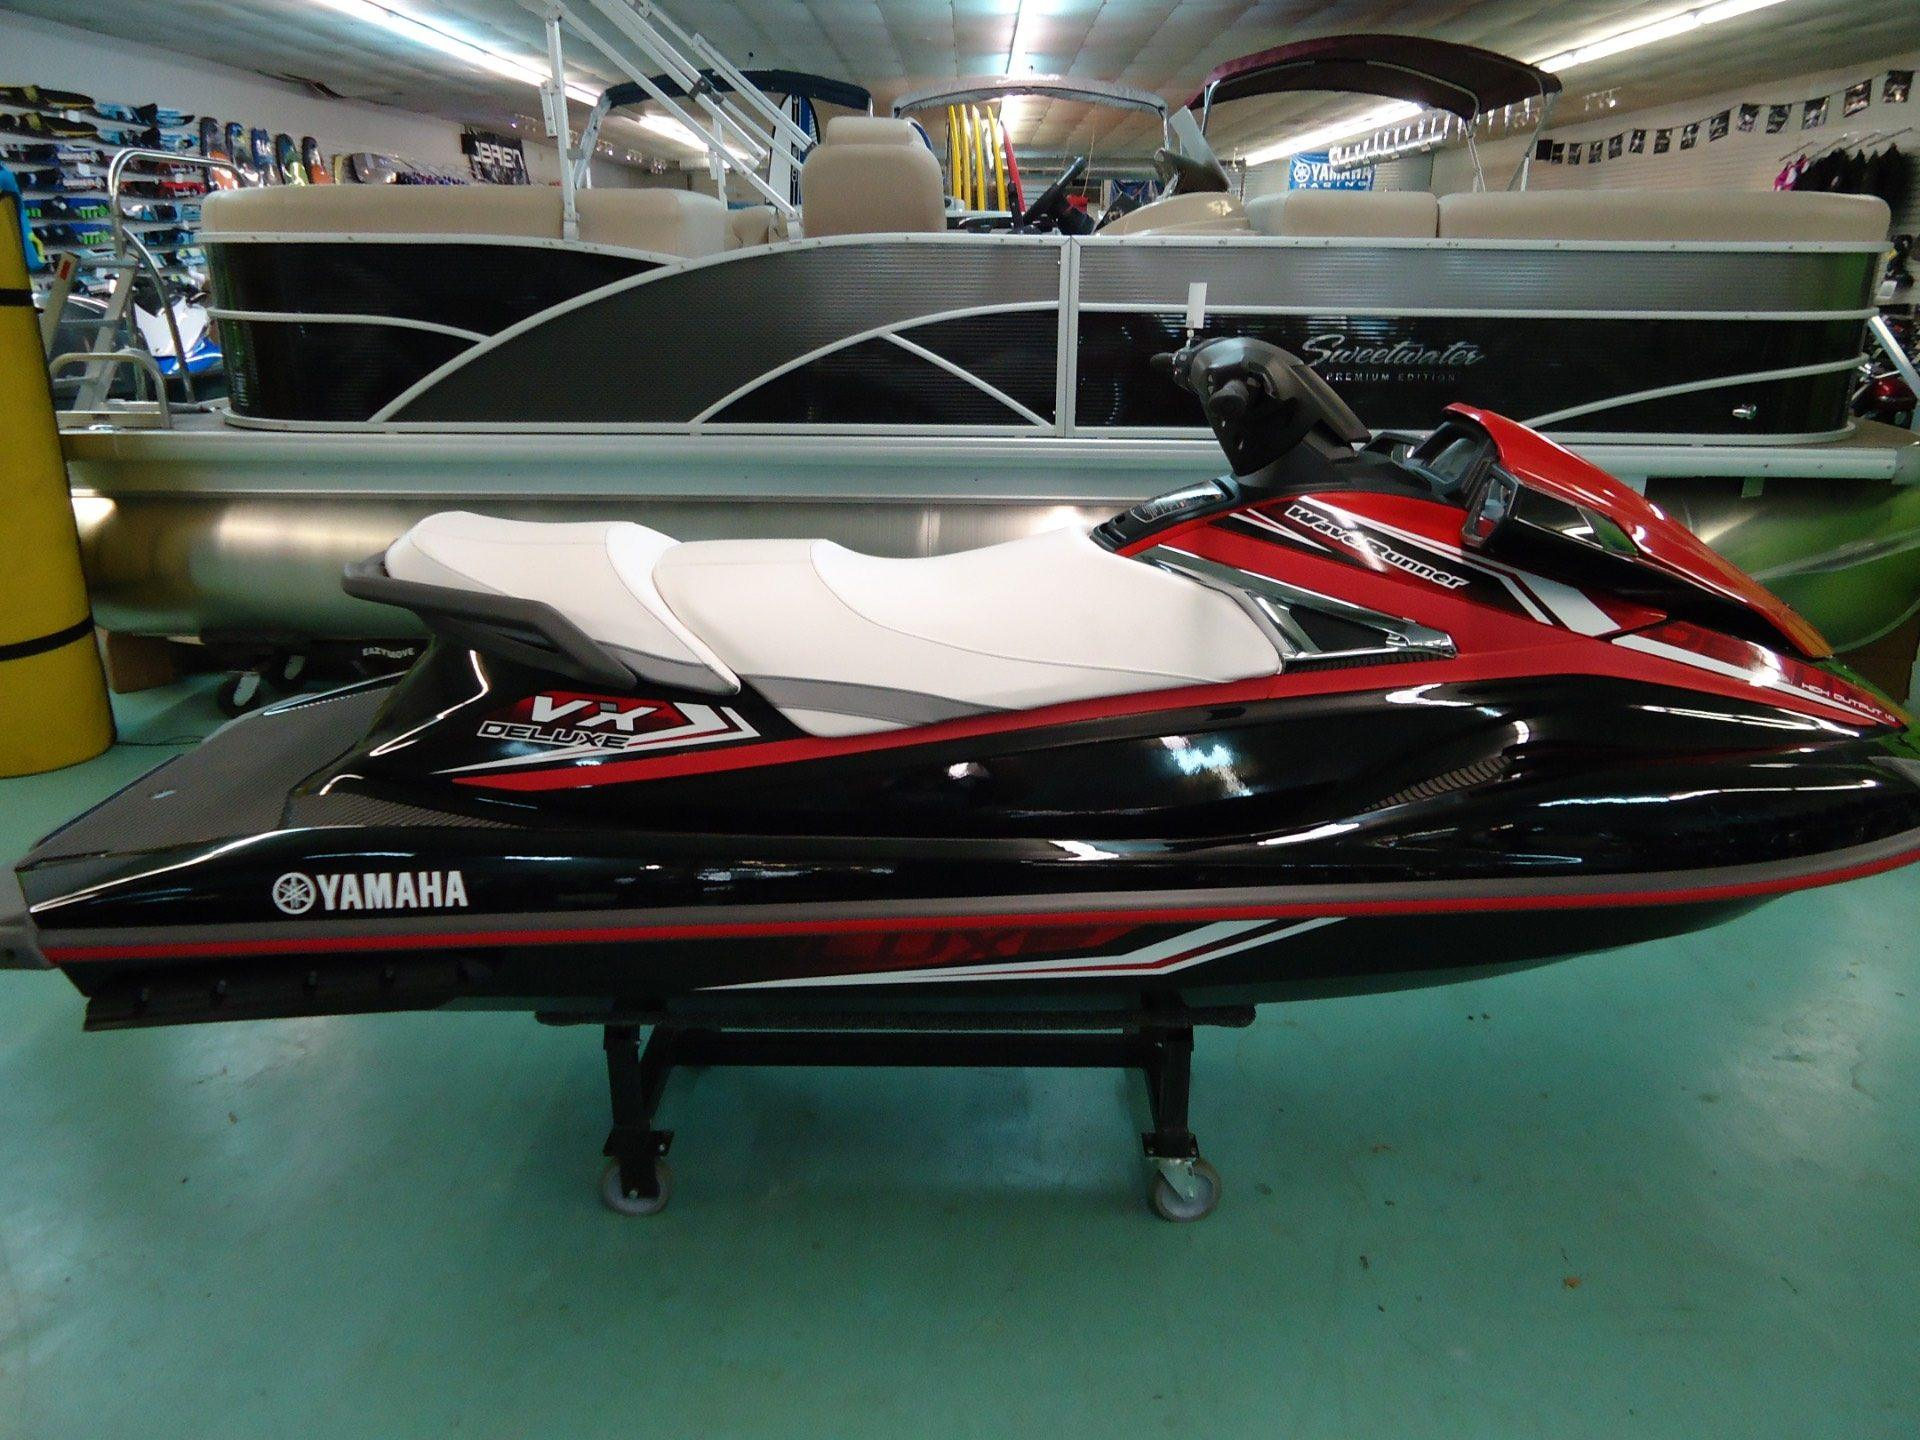 2016 Yamaha VX Deluxe for sale 130997